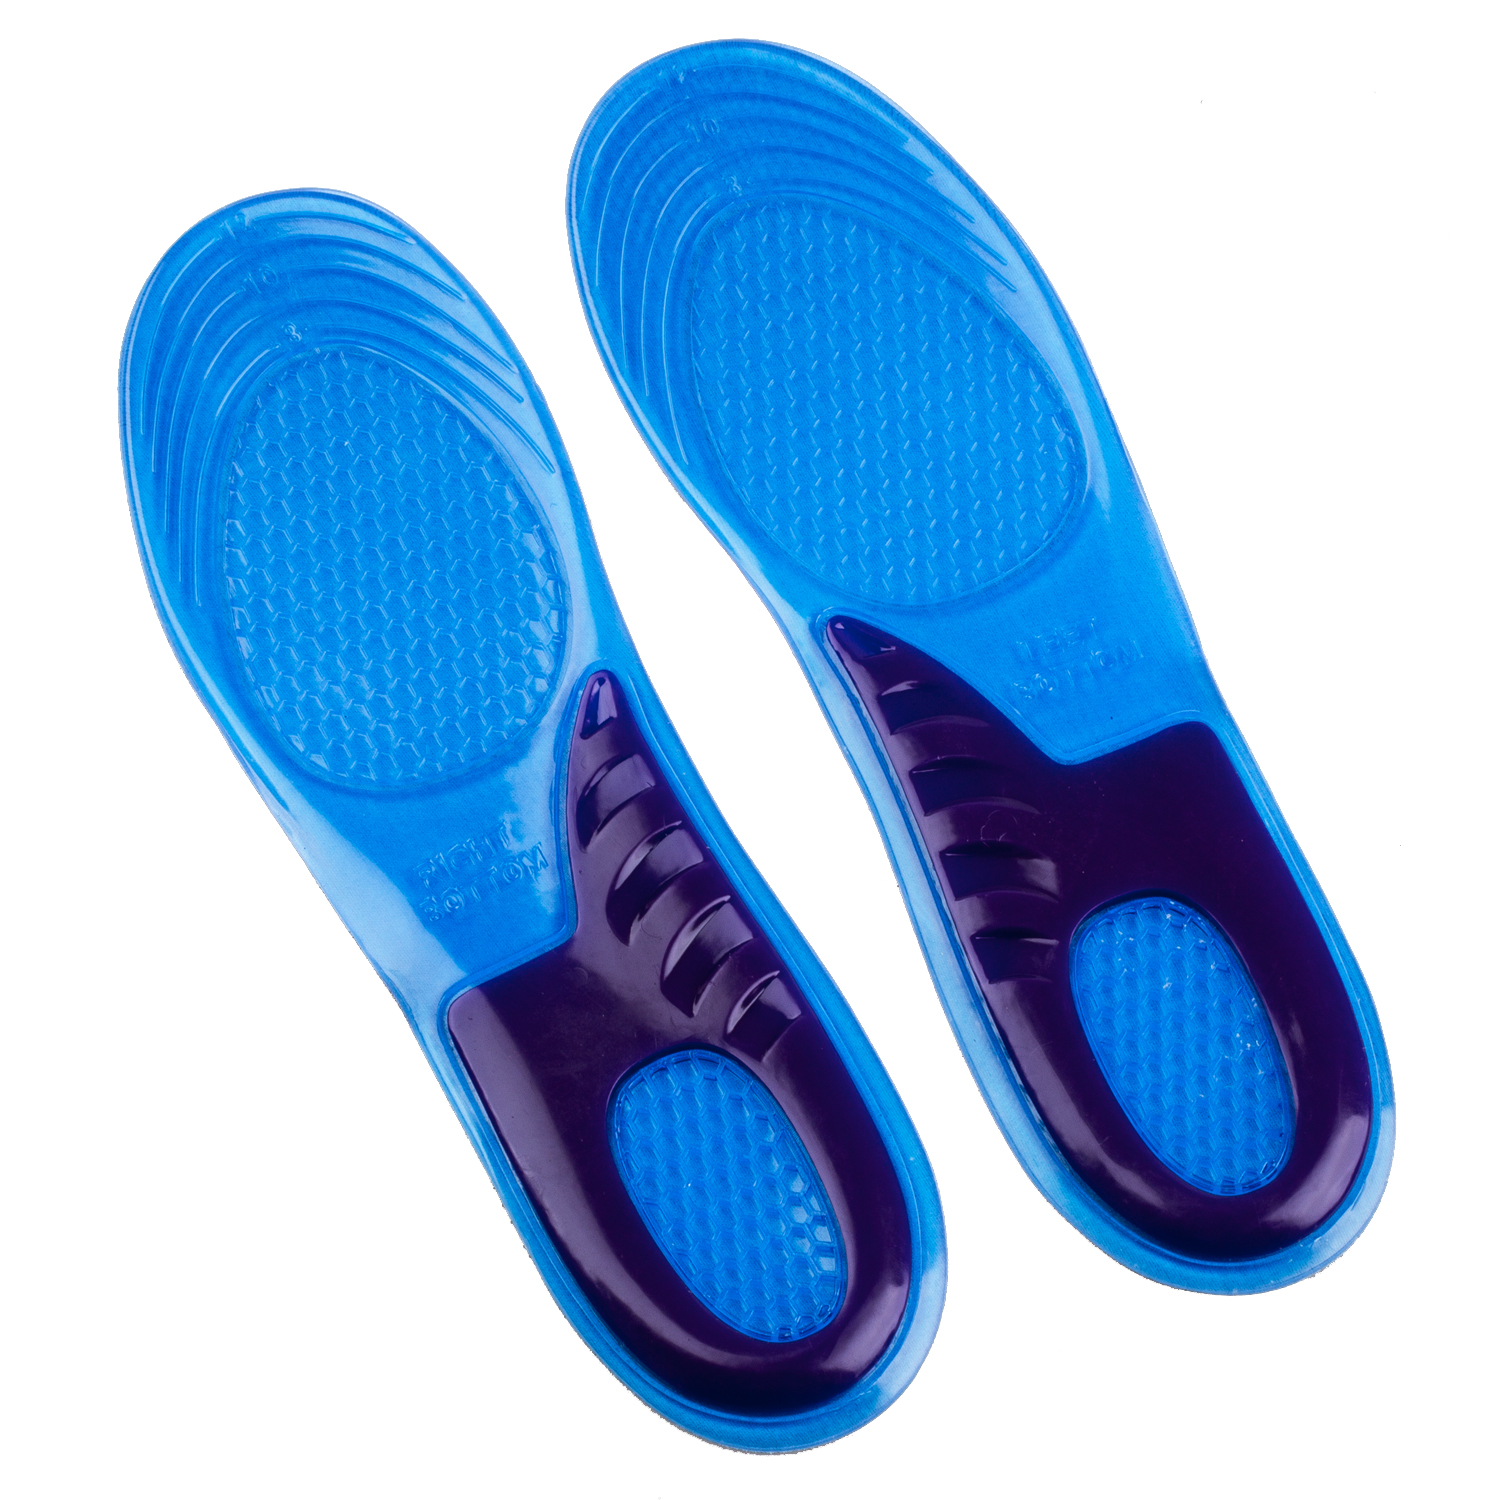 New Orthotic Arch Support Massaging Silicone Gel Insoles Sport Shoe Insole Run Pad Woman(size6-9 A0) & Man (sizes 8-12 B0) 4pcs silicone gel orthotic arch pad arch support insole flat foot relieve pain orthopedics insert new